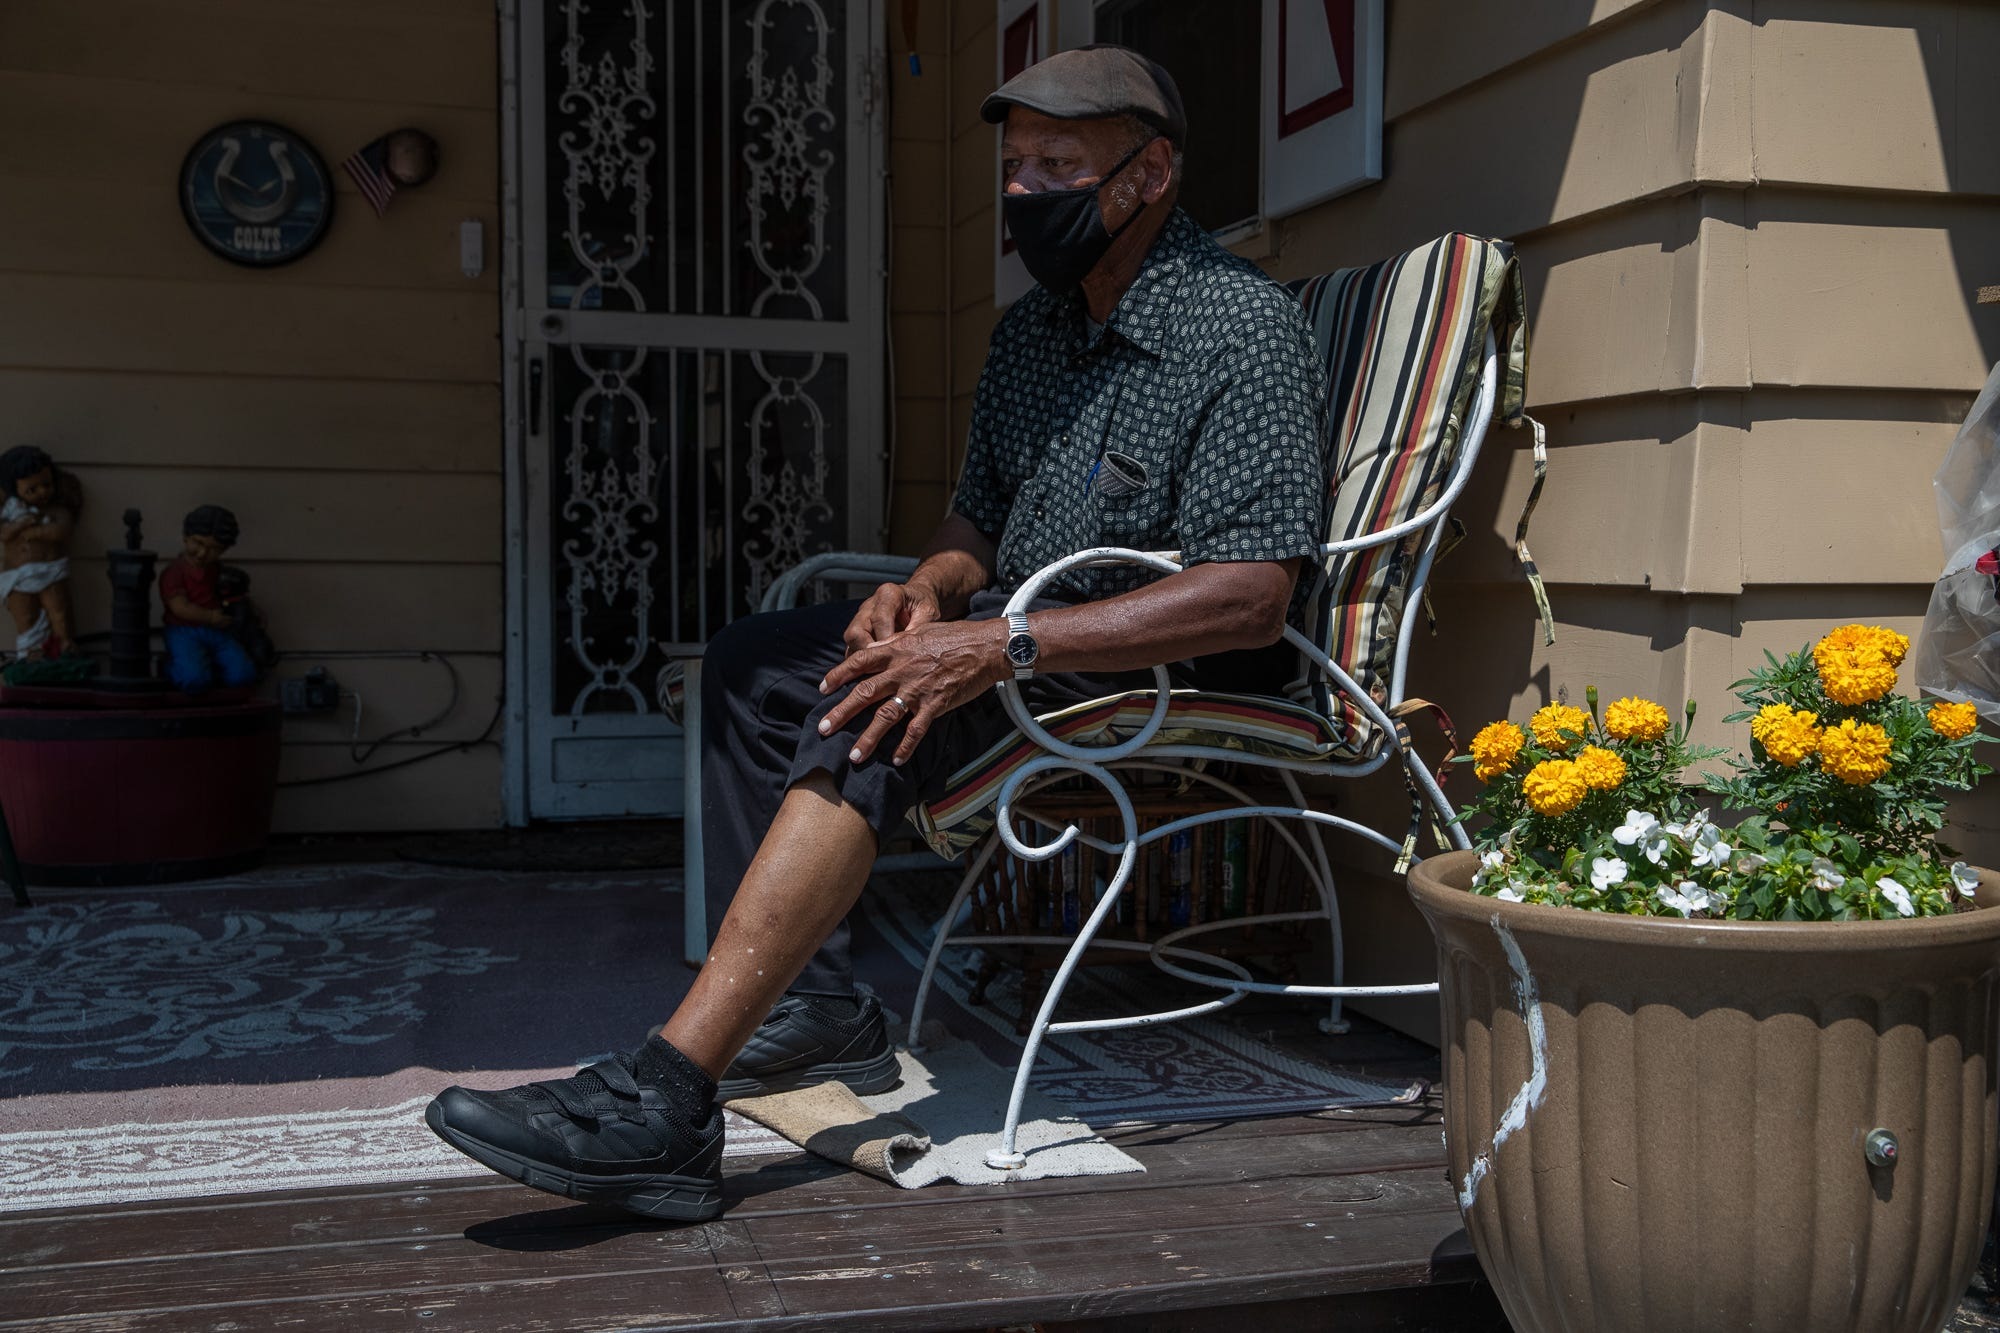 """Gordon Mitchum Sr., 78, of Indianapolis, a retired mail handler of 43 years, pulls up his left pant leg to show the scars left by an Indianapolis Metropolitan Police Department dog bite, at his home on Monday, July 6, 2020. Mitchum says he was given no warning when an IMPD K-9 officer entered his yard to search for possible suspects in a carjacking after a chase that ended on Mitchum's street. """"I was sitting here in this chair,"""" he said. """"And by the time I could see that dog, I could tell he was on a leash, but he came around and all at once he grabbed my leg."""" Mitchum ended up on his back on the ground when the dog let go. The dog then grabbed onto his right foot."""